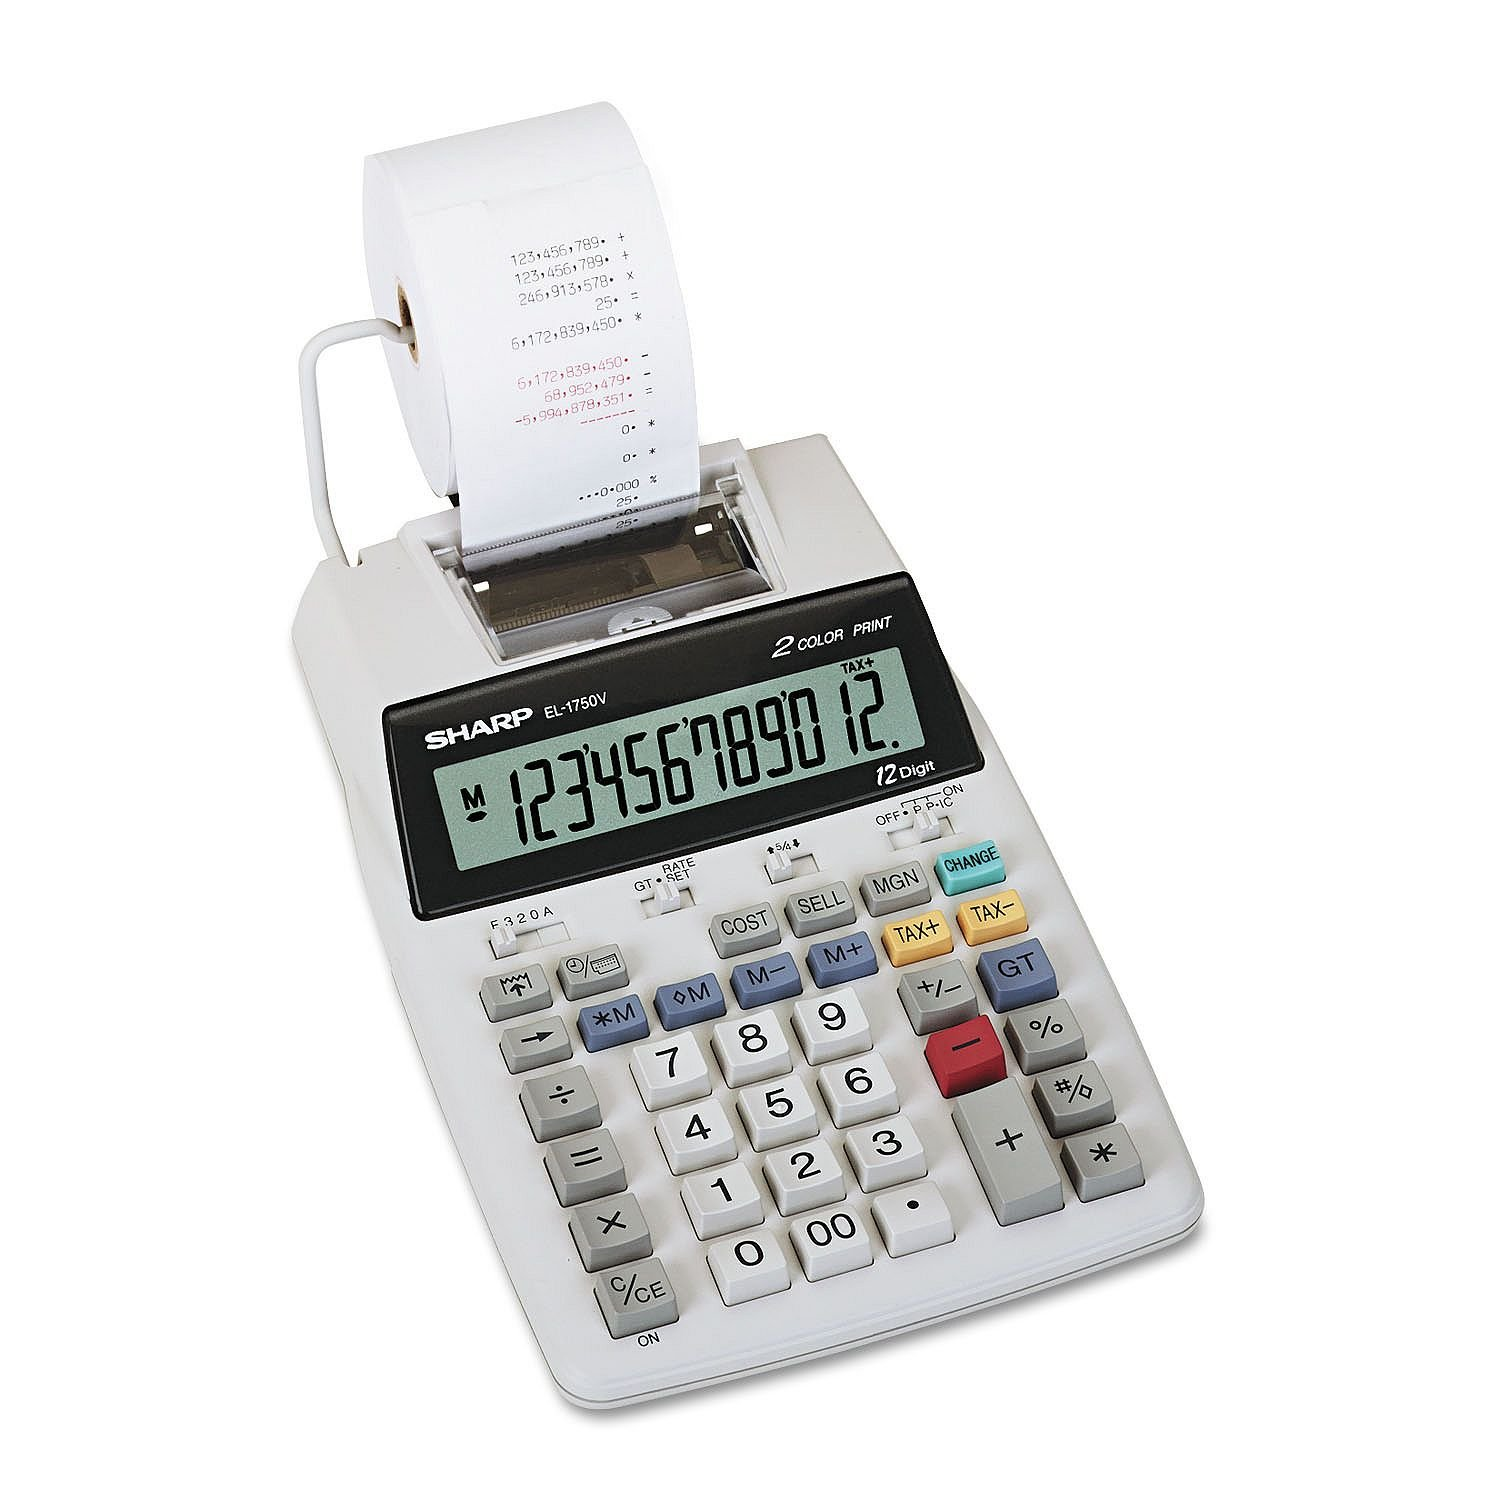 EL-1750V Two-Color Printing Calculator, Black/Red Print, 2 Lines/Sec, Sold as 2 Each Sharp SHREL1750V